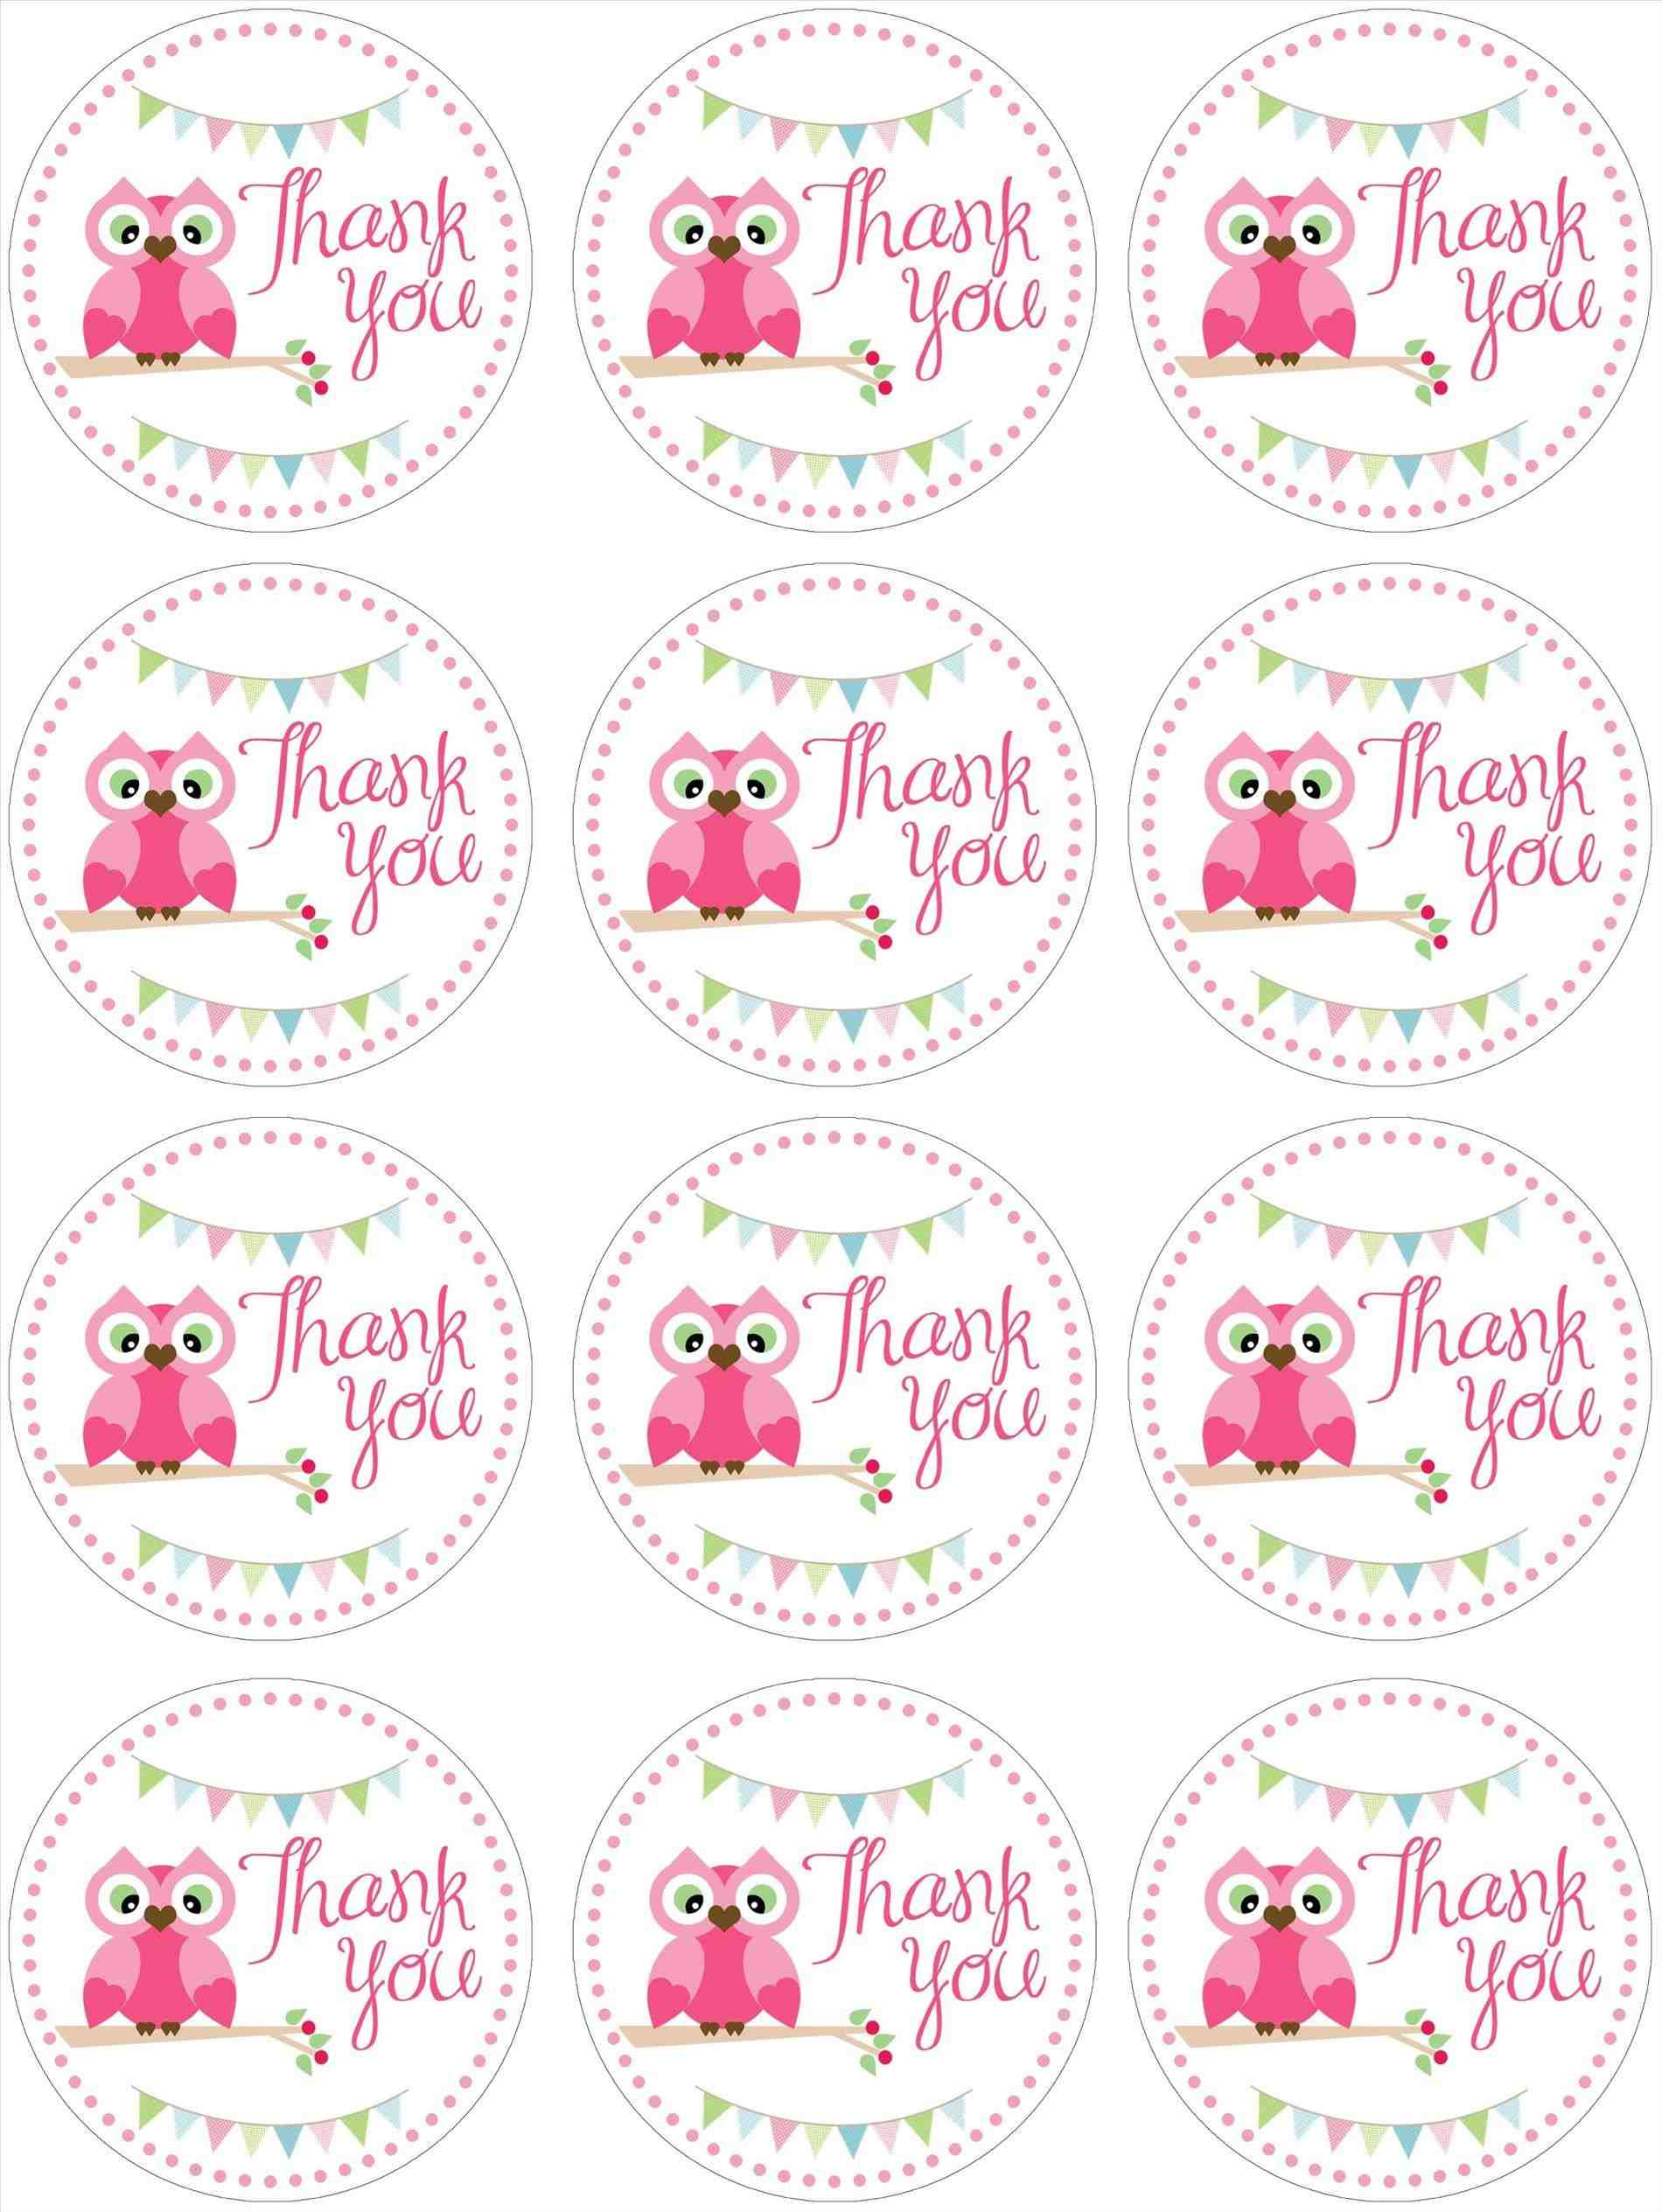 Printables-Favors-And-Owl-Free-Printable-Thank-You-Tags-Template - Free Printable Thank You Tags For Birthday Favors